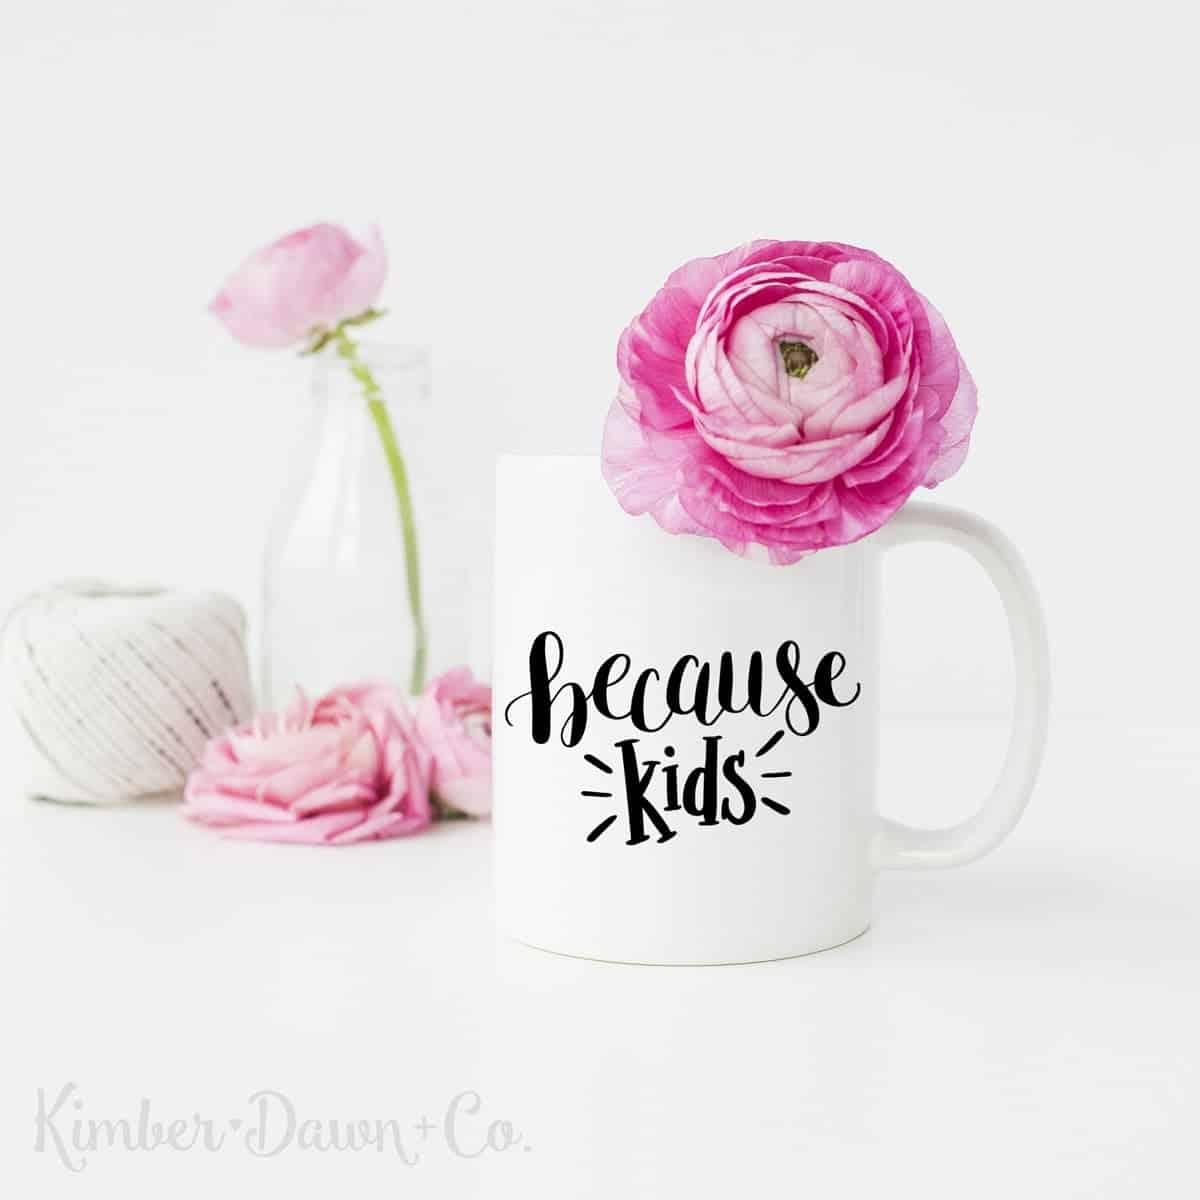 Because Kids - Free Cut File for Silhouette CAMEO + Cricut crafts